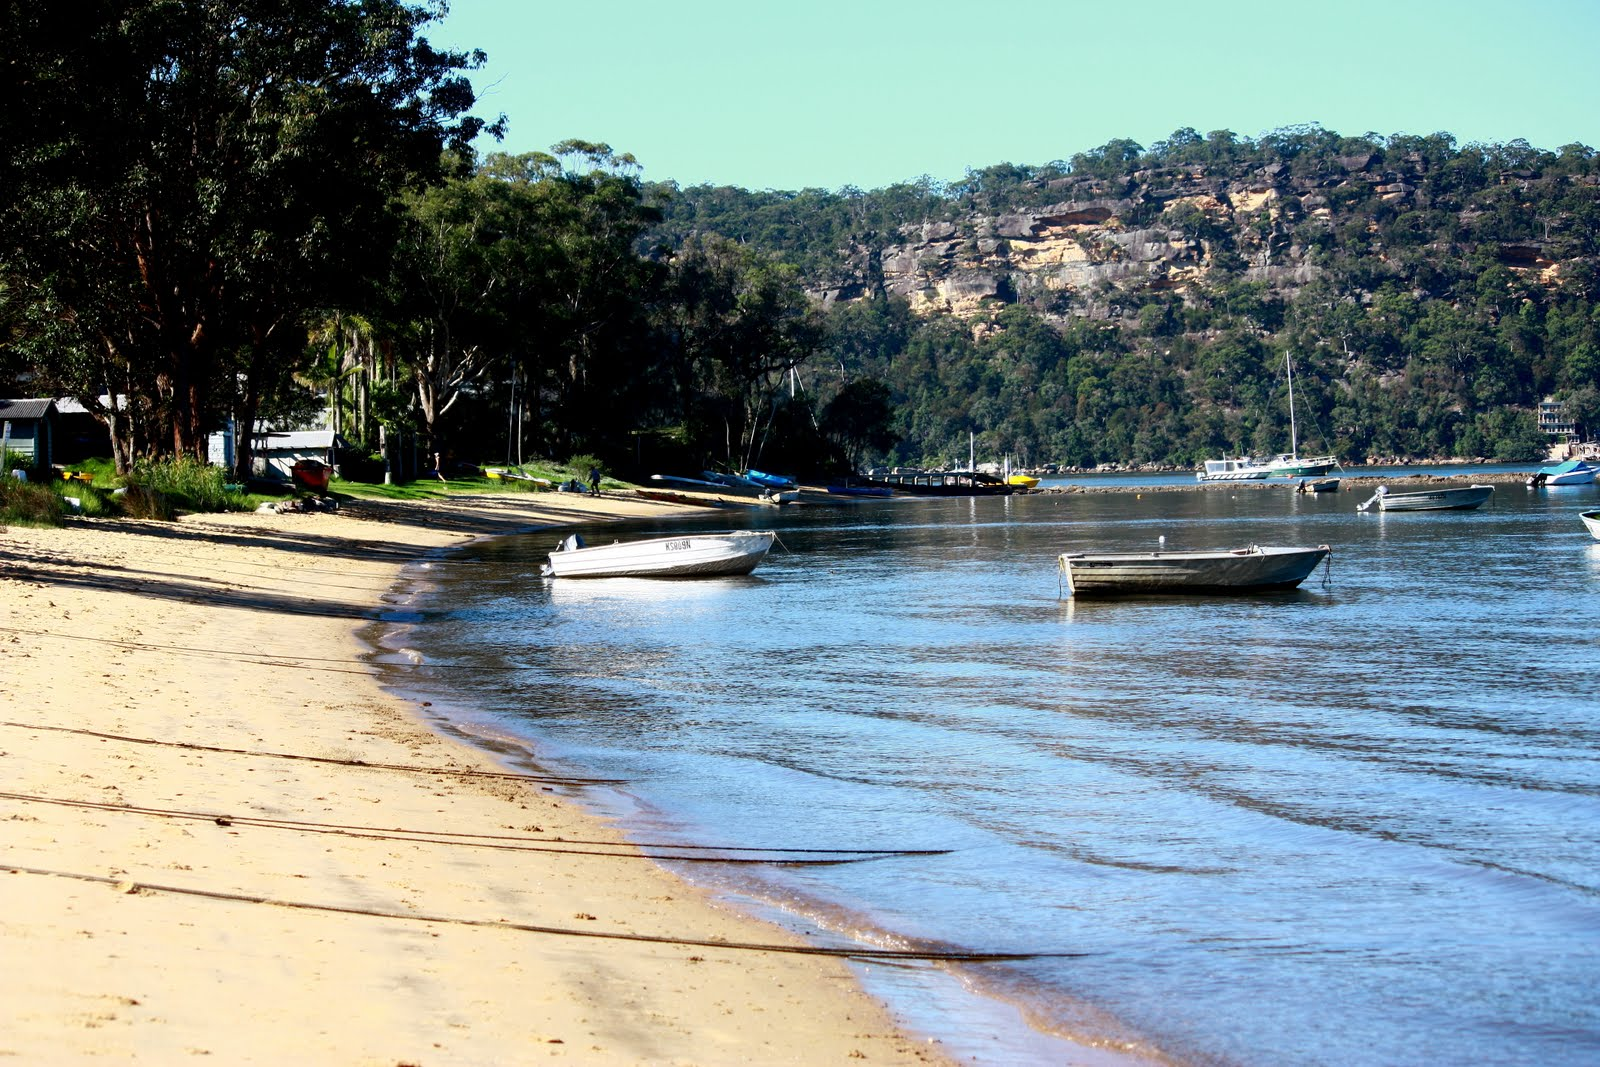 the secret river The secret river, written by kate grenville in 2005, is a historical novel about an early 19th-century englishman transported to australia for theft.